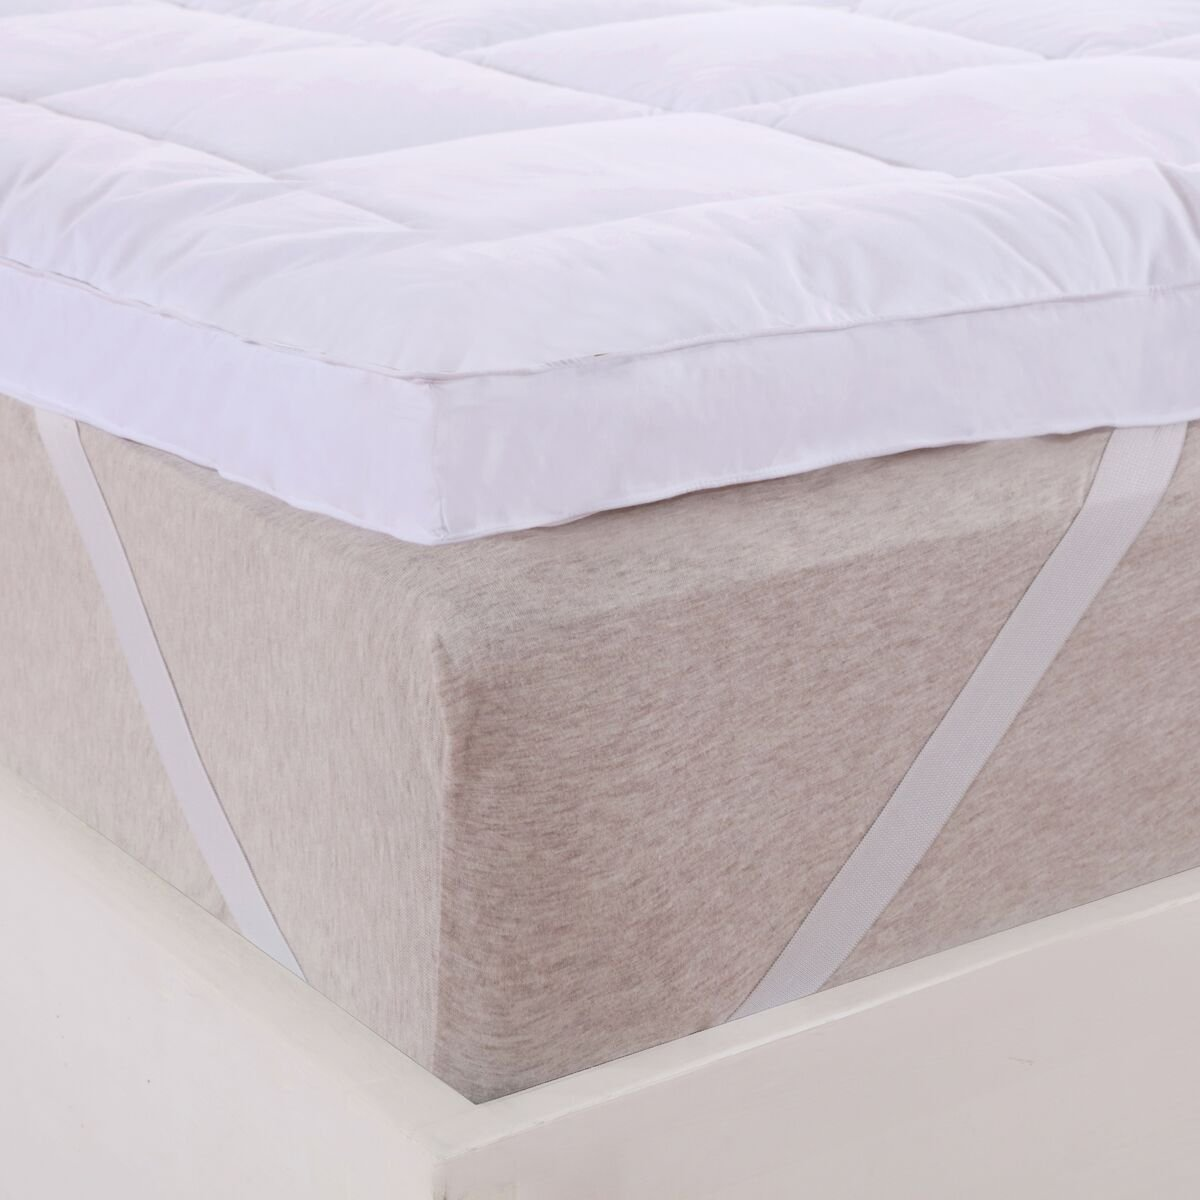 Abripedic Plush Cotton MATTRESS TOPPER, Cal-King, 2 Inches Hypoallergenic Overfilled Down Alternative Anchor Bands Mattress Topper